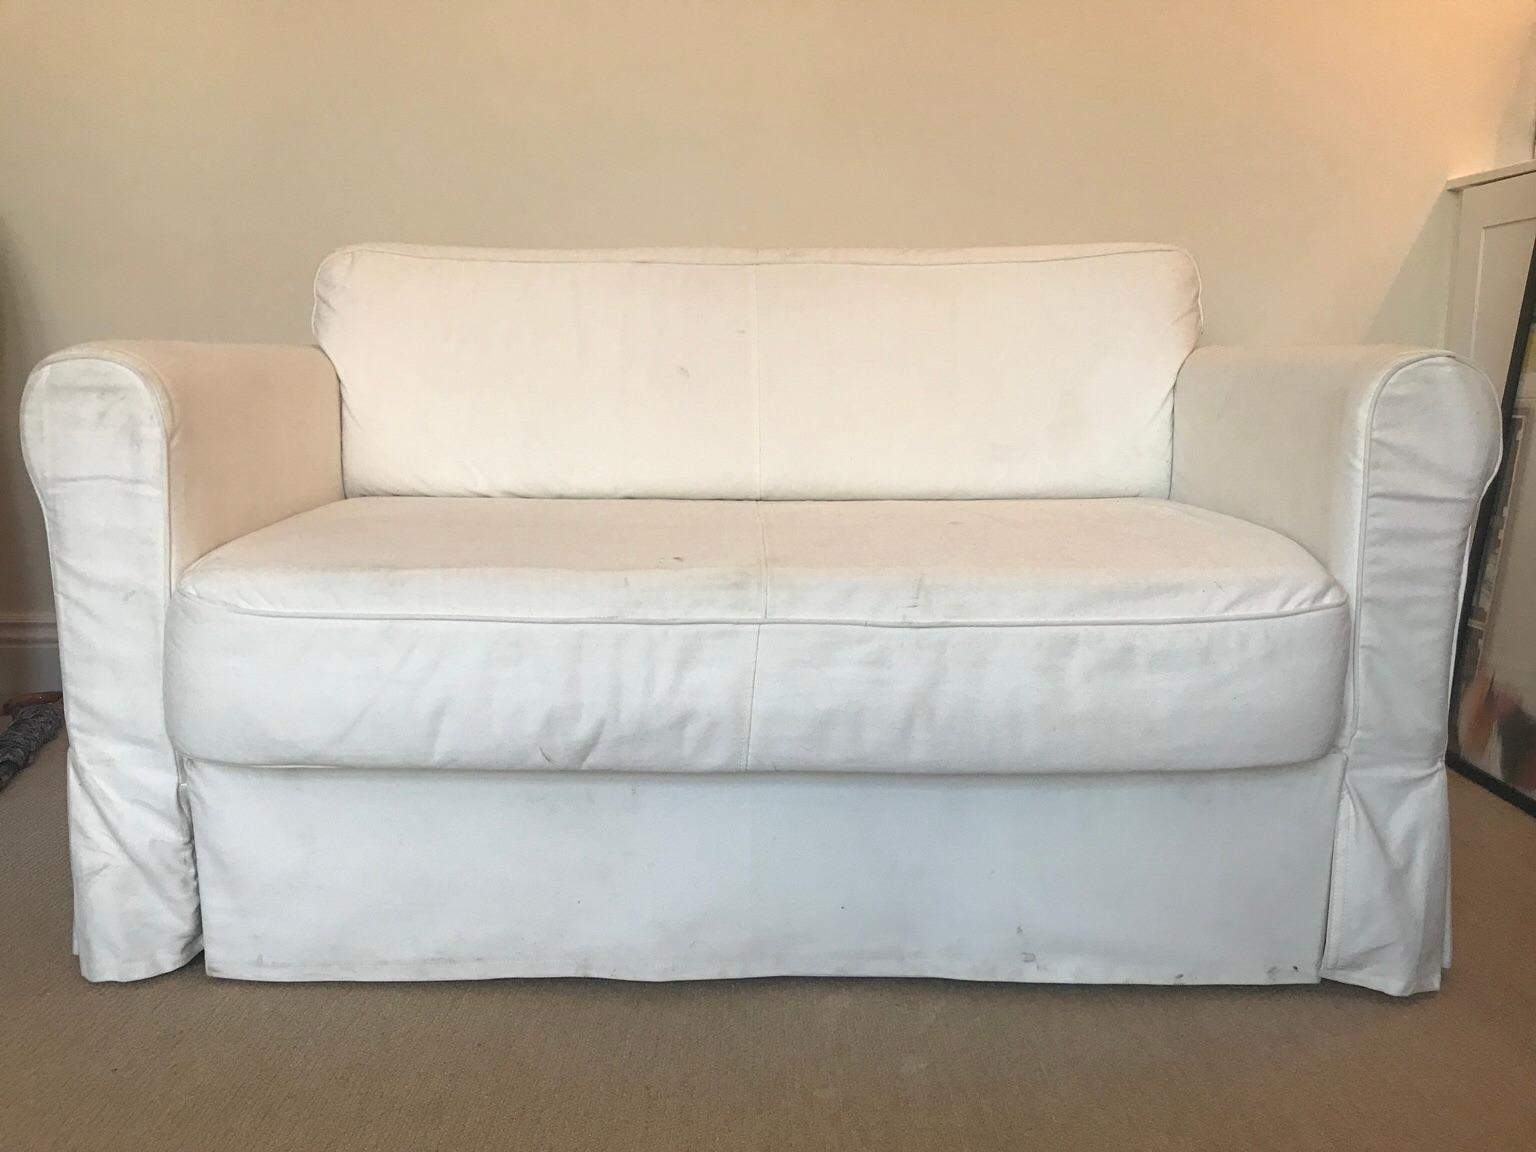 Superb Ikea Hagalund Sofa Bed With New Covers Bralicious Painted Fabric Chair Ideas Braliciousco